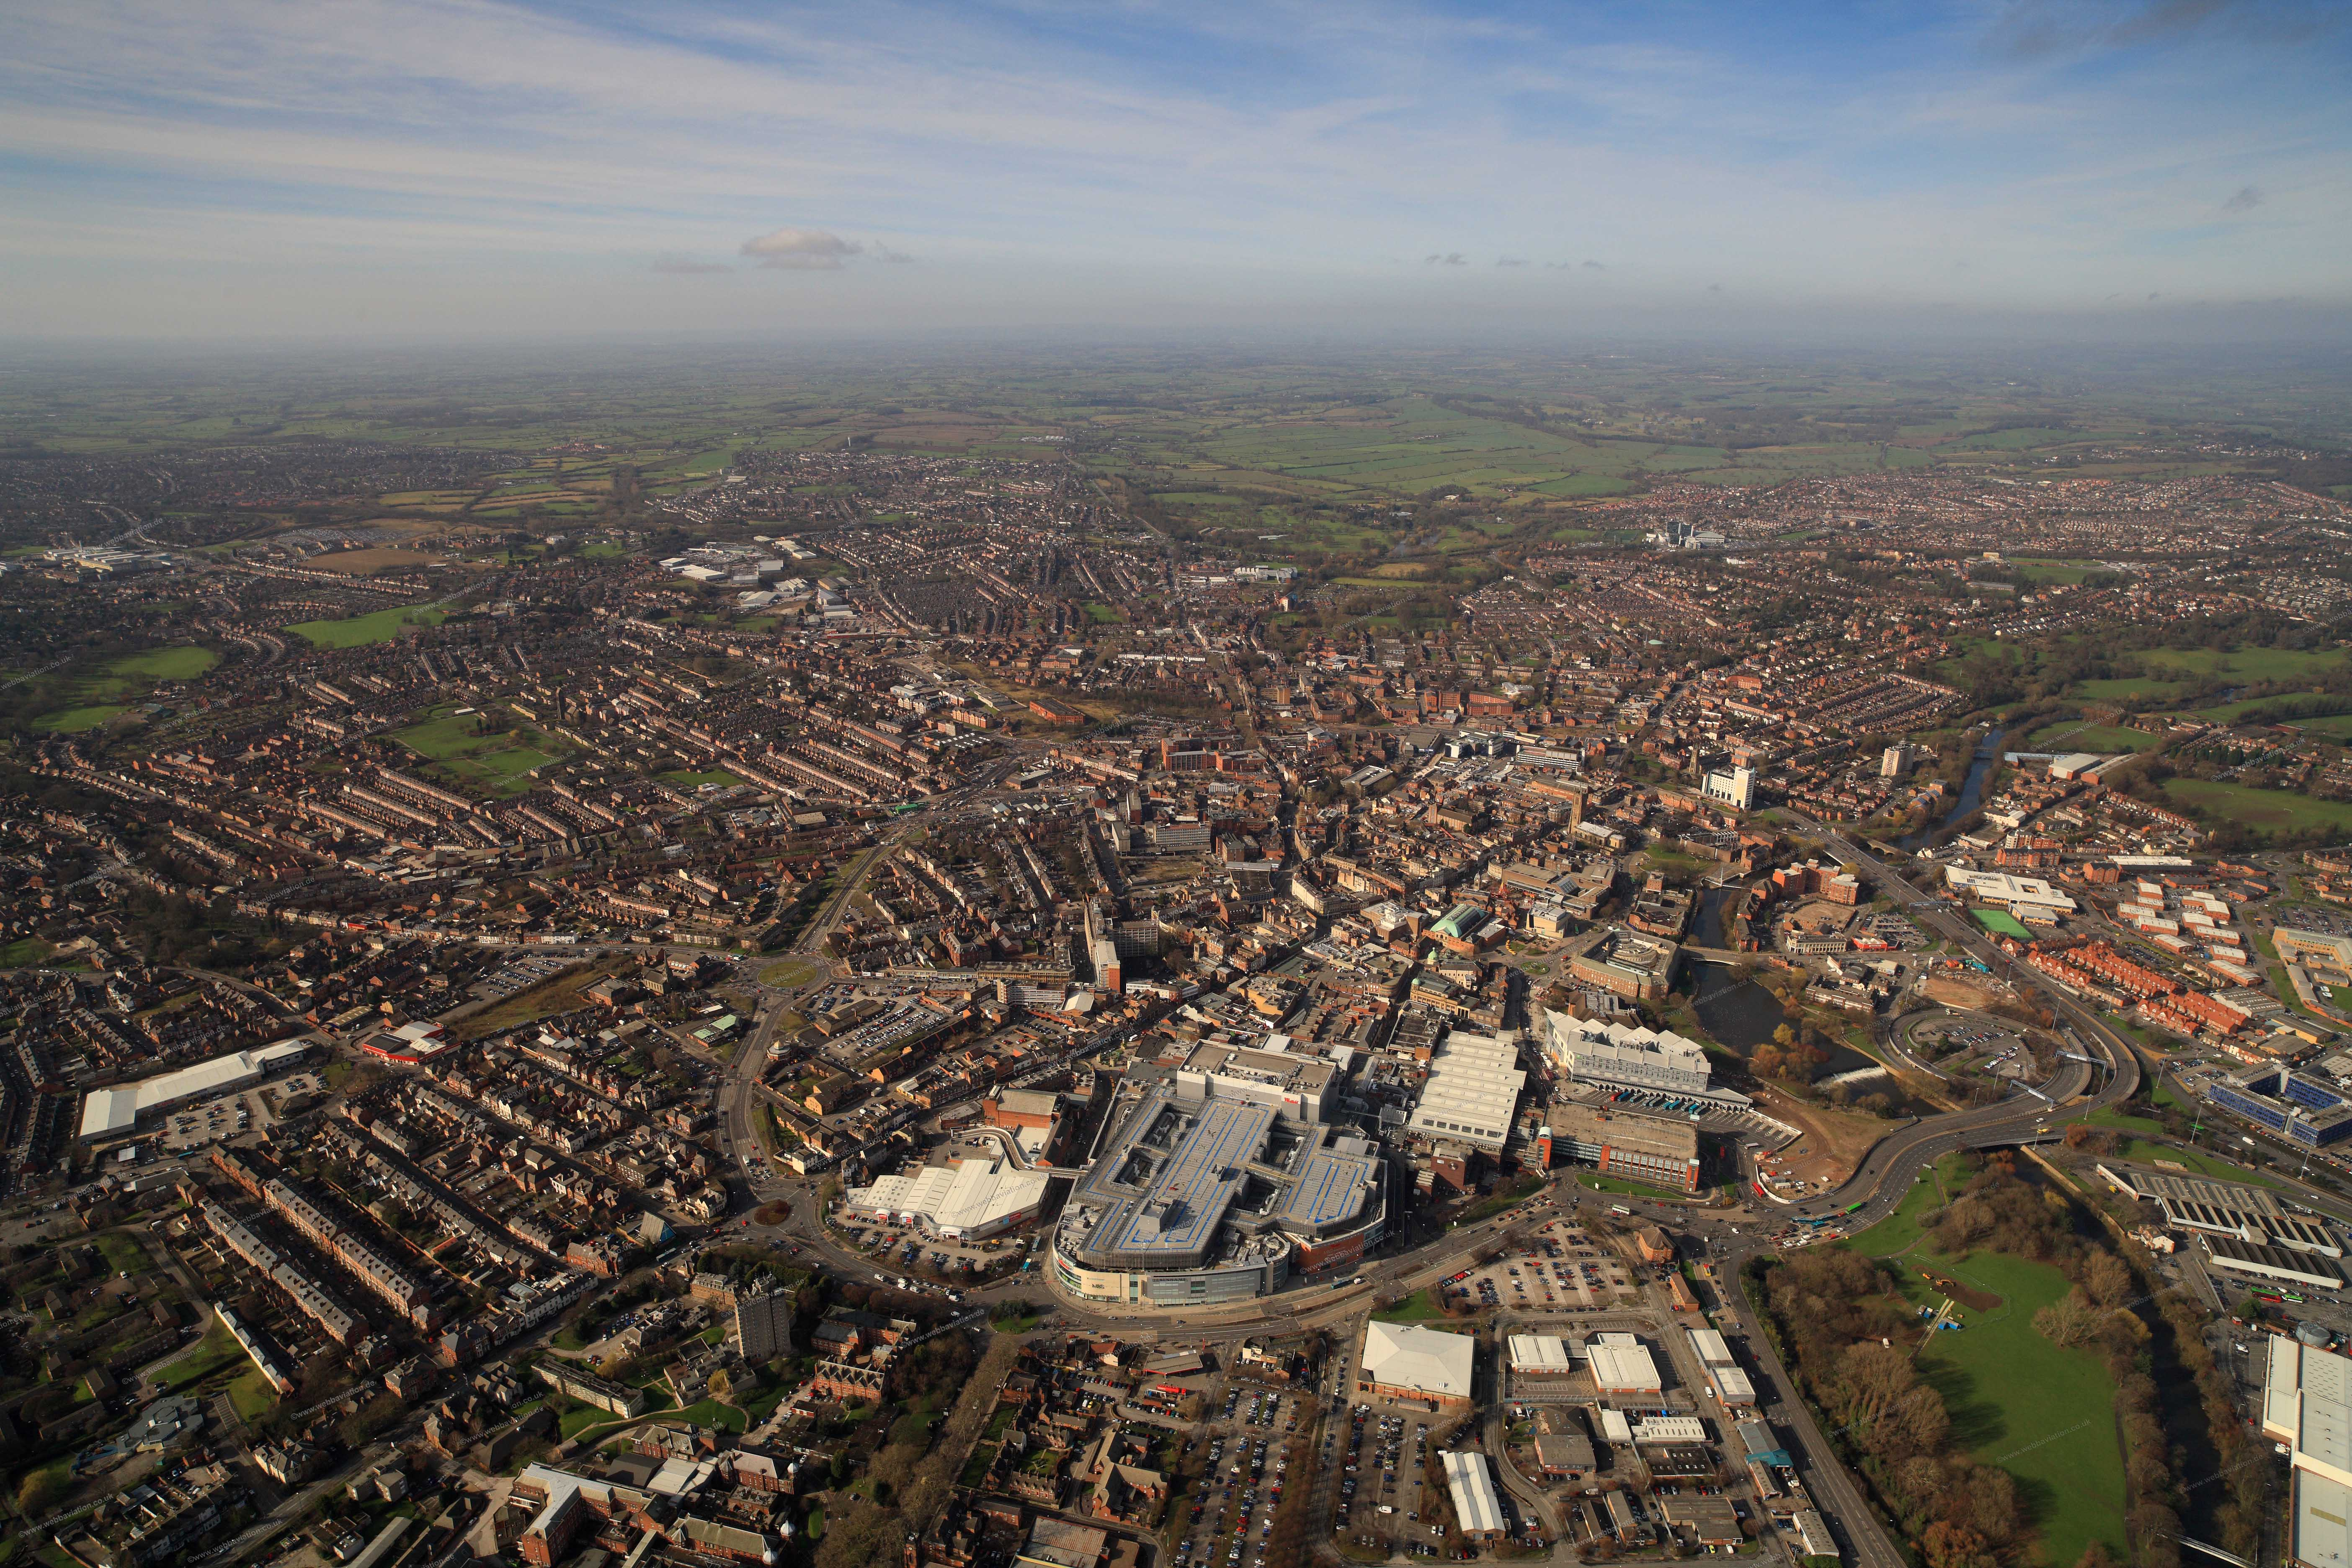 click herefor a high res sample aerial photograph of Derby: www.webbaviation.co.uk/gallery/v/derbyshire/derby